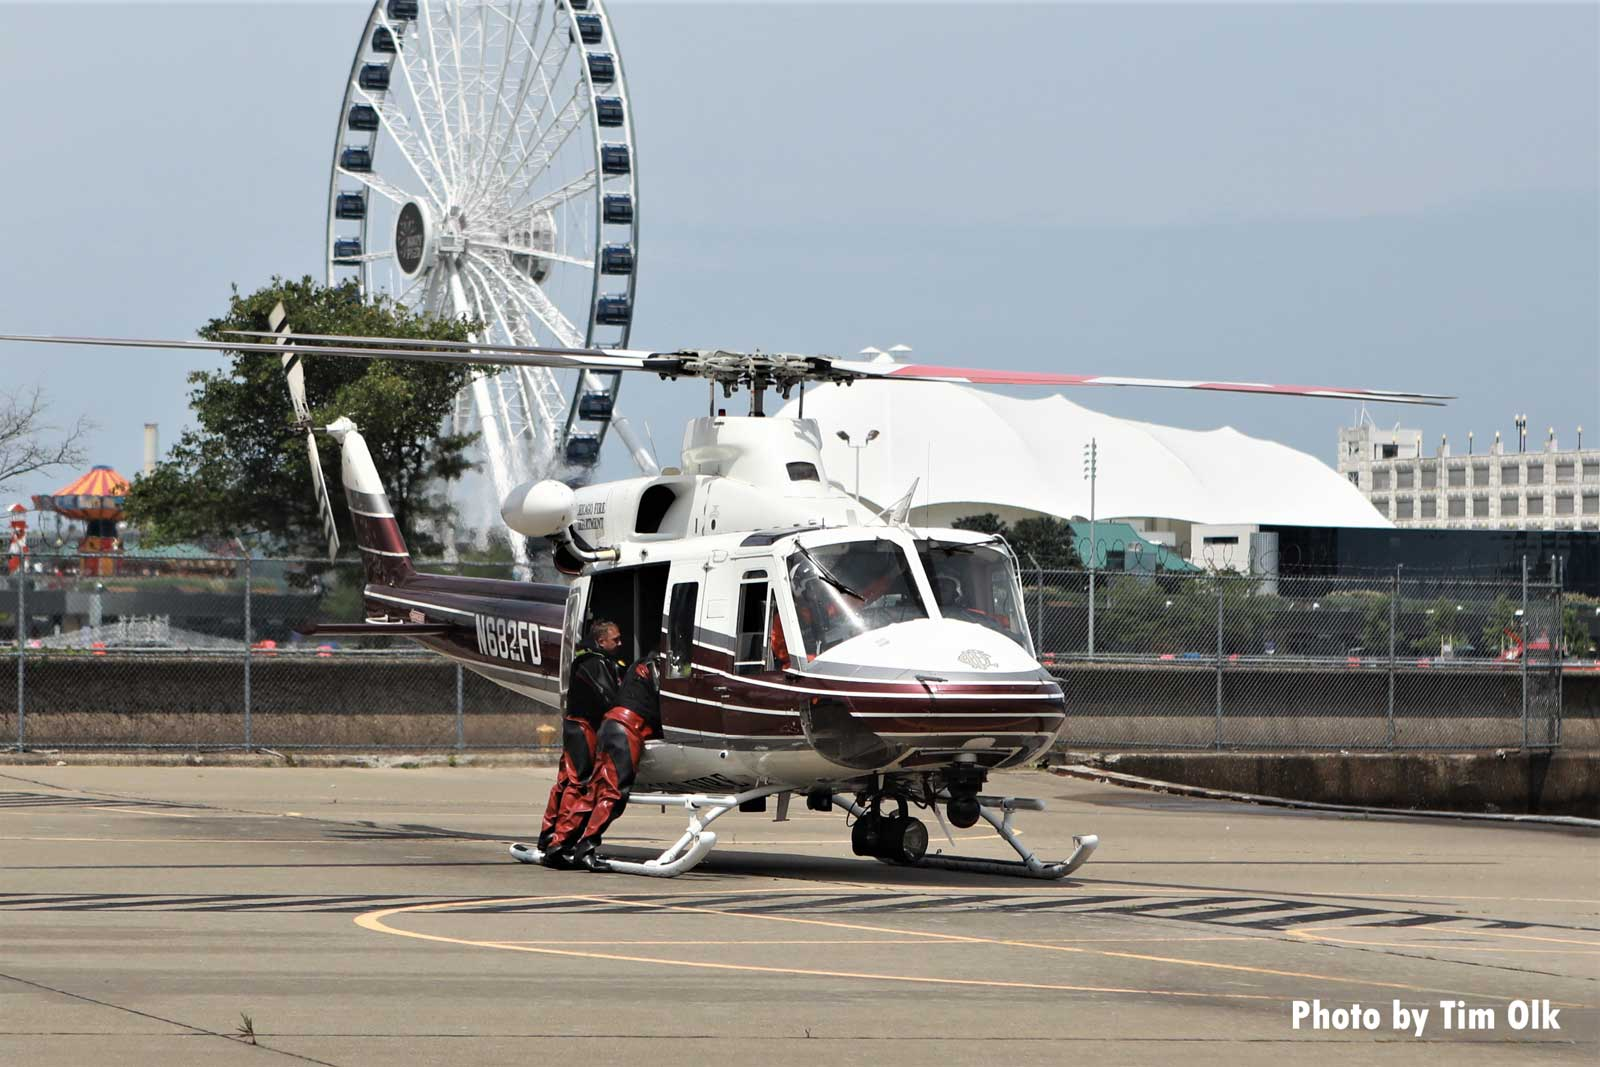 Chicago Fire helicopter on the ground